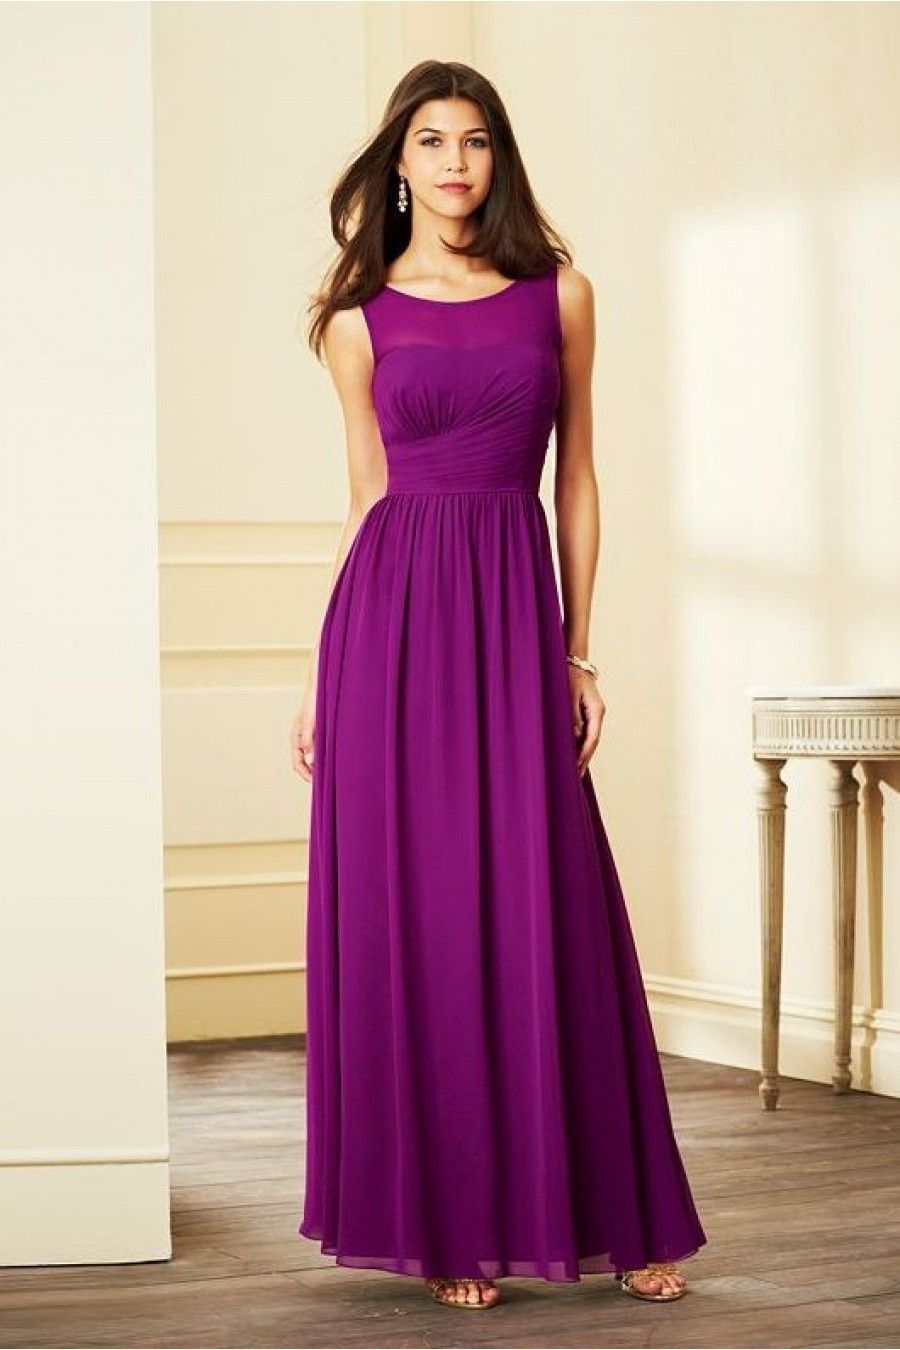 Alfred Angelo bridesmaid dress - style 7298L $307 Bridesmaids | NEW ...